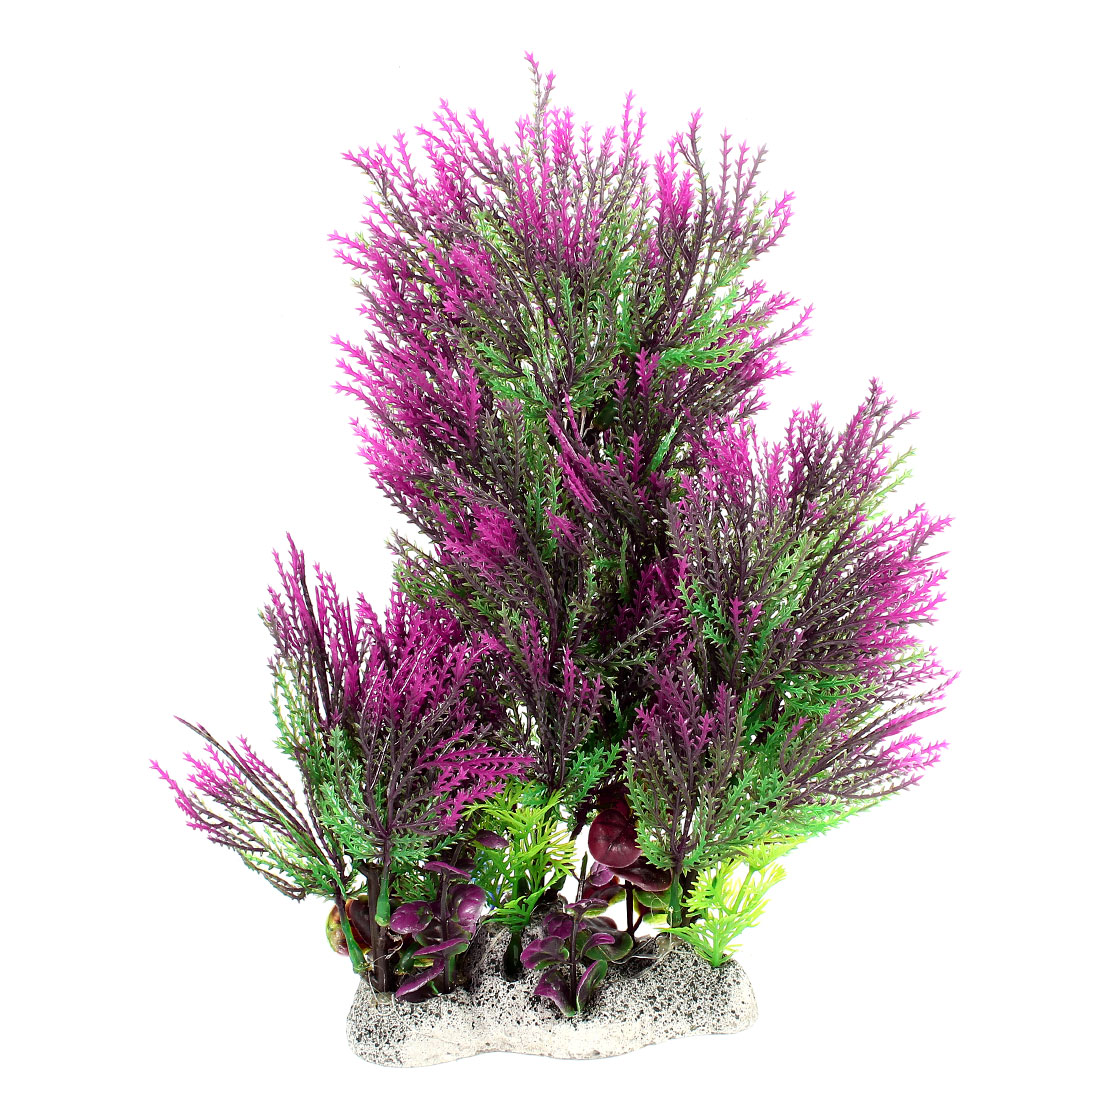 27cm Height Emulational Green Purple Leaf Water Plant Glass for Fish Tank Aquarium Decor